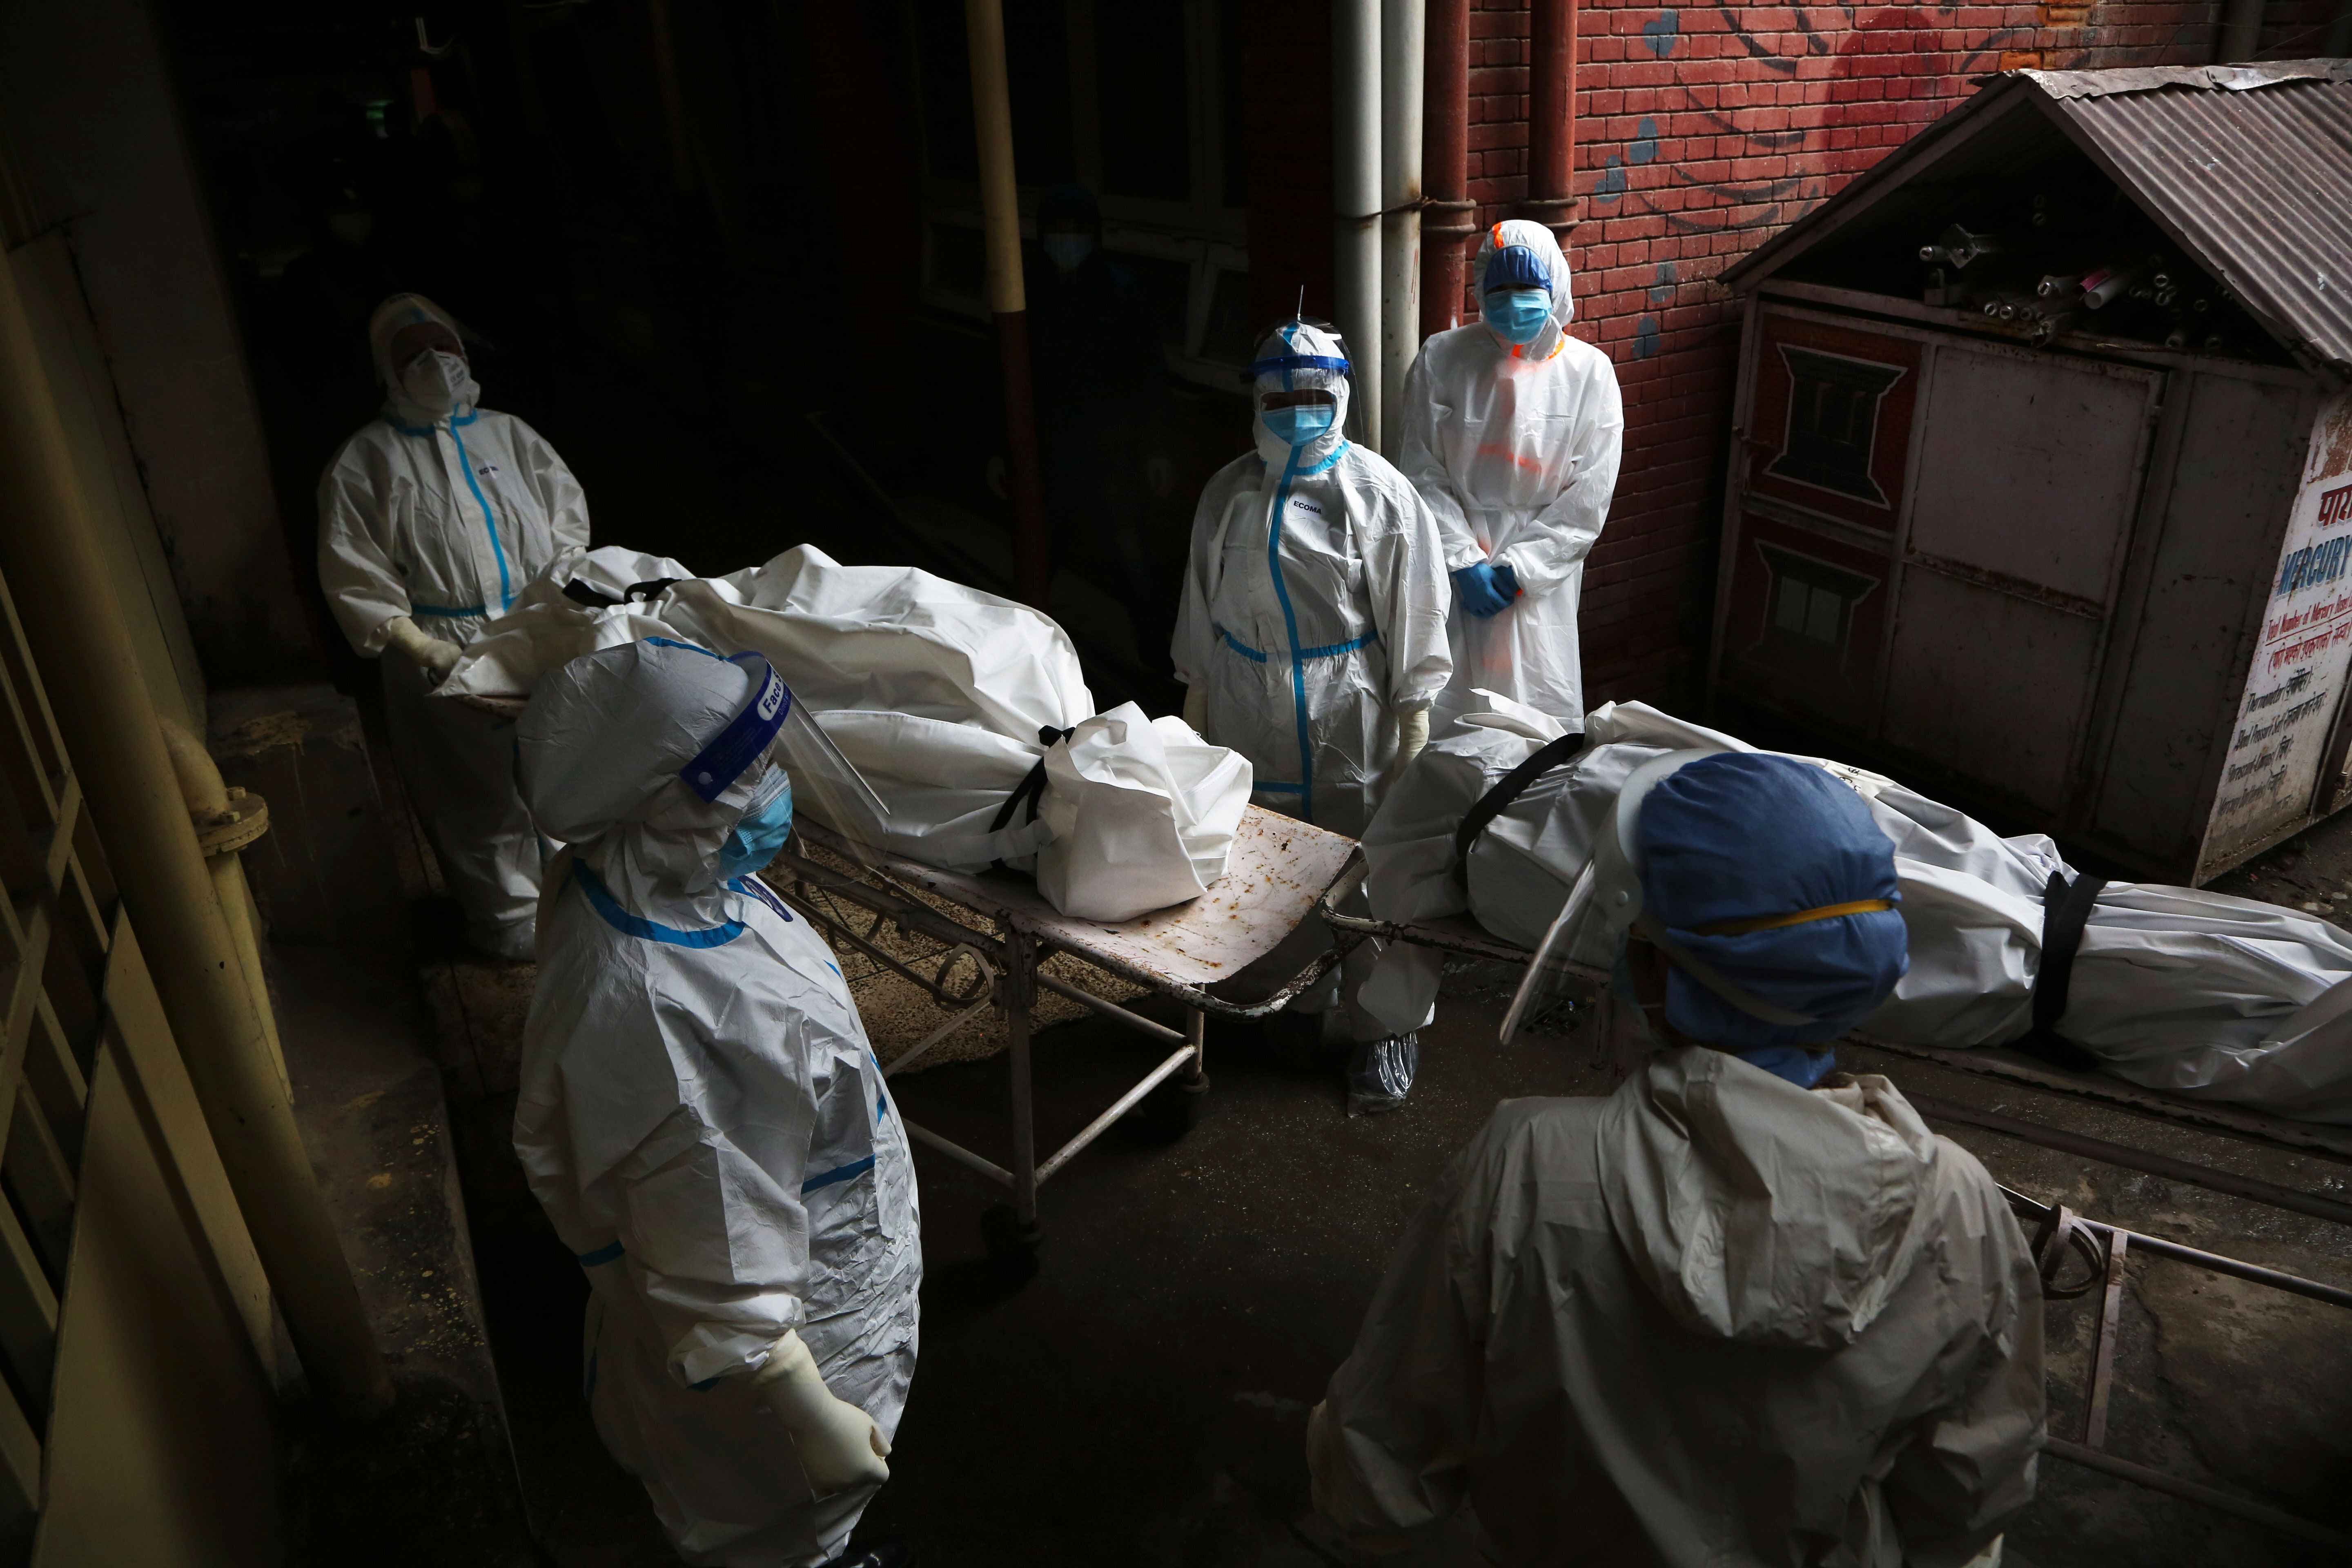 Paramedics get ready to load the bodies of Covid-19 victims into an ambulance for cremation in Kathmandu, Nepal, on May 12.